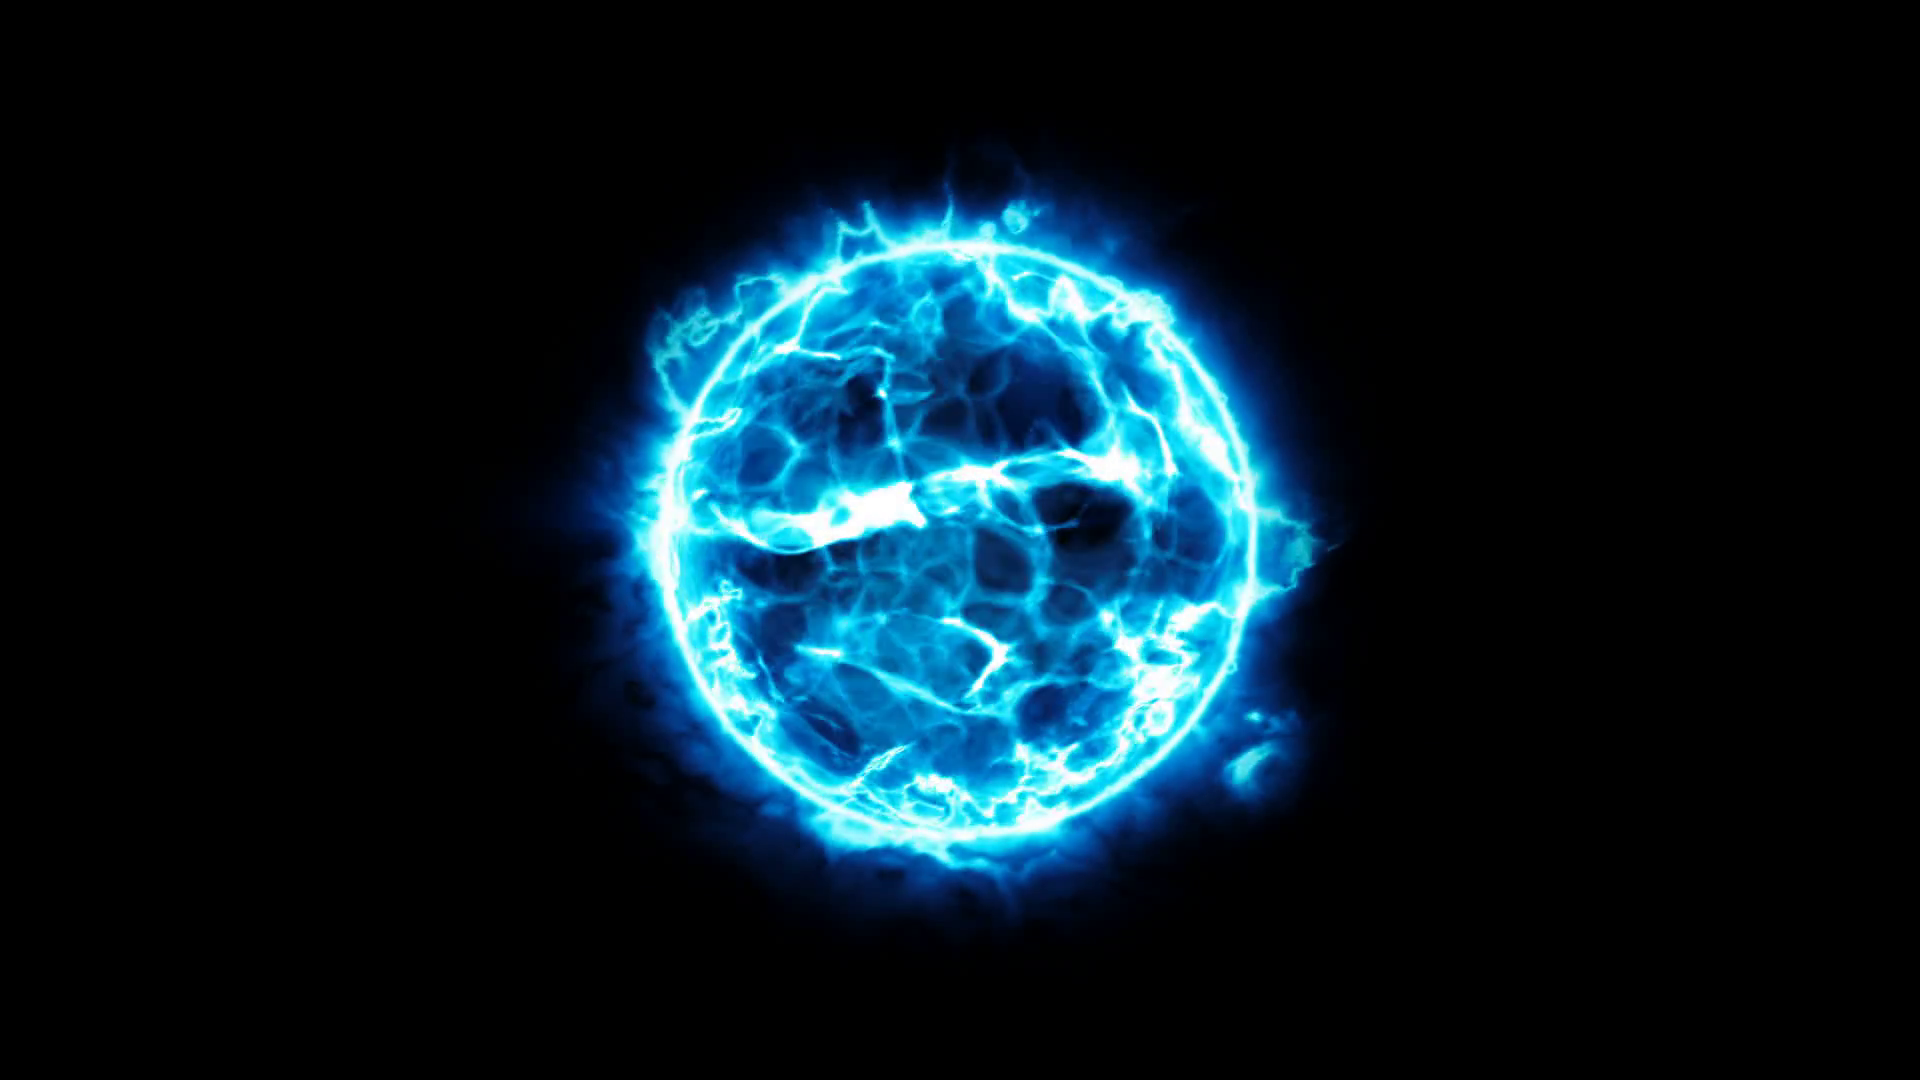 Abstract blue energy ball on black background. Energy appearance. Plasma  effect. Motion Background.